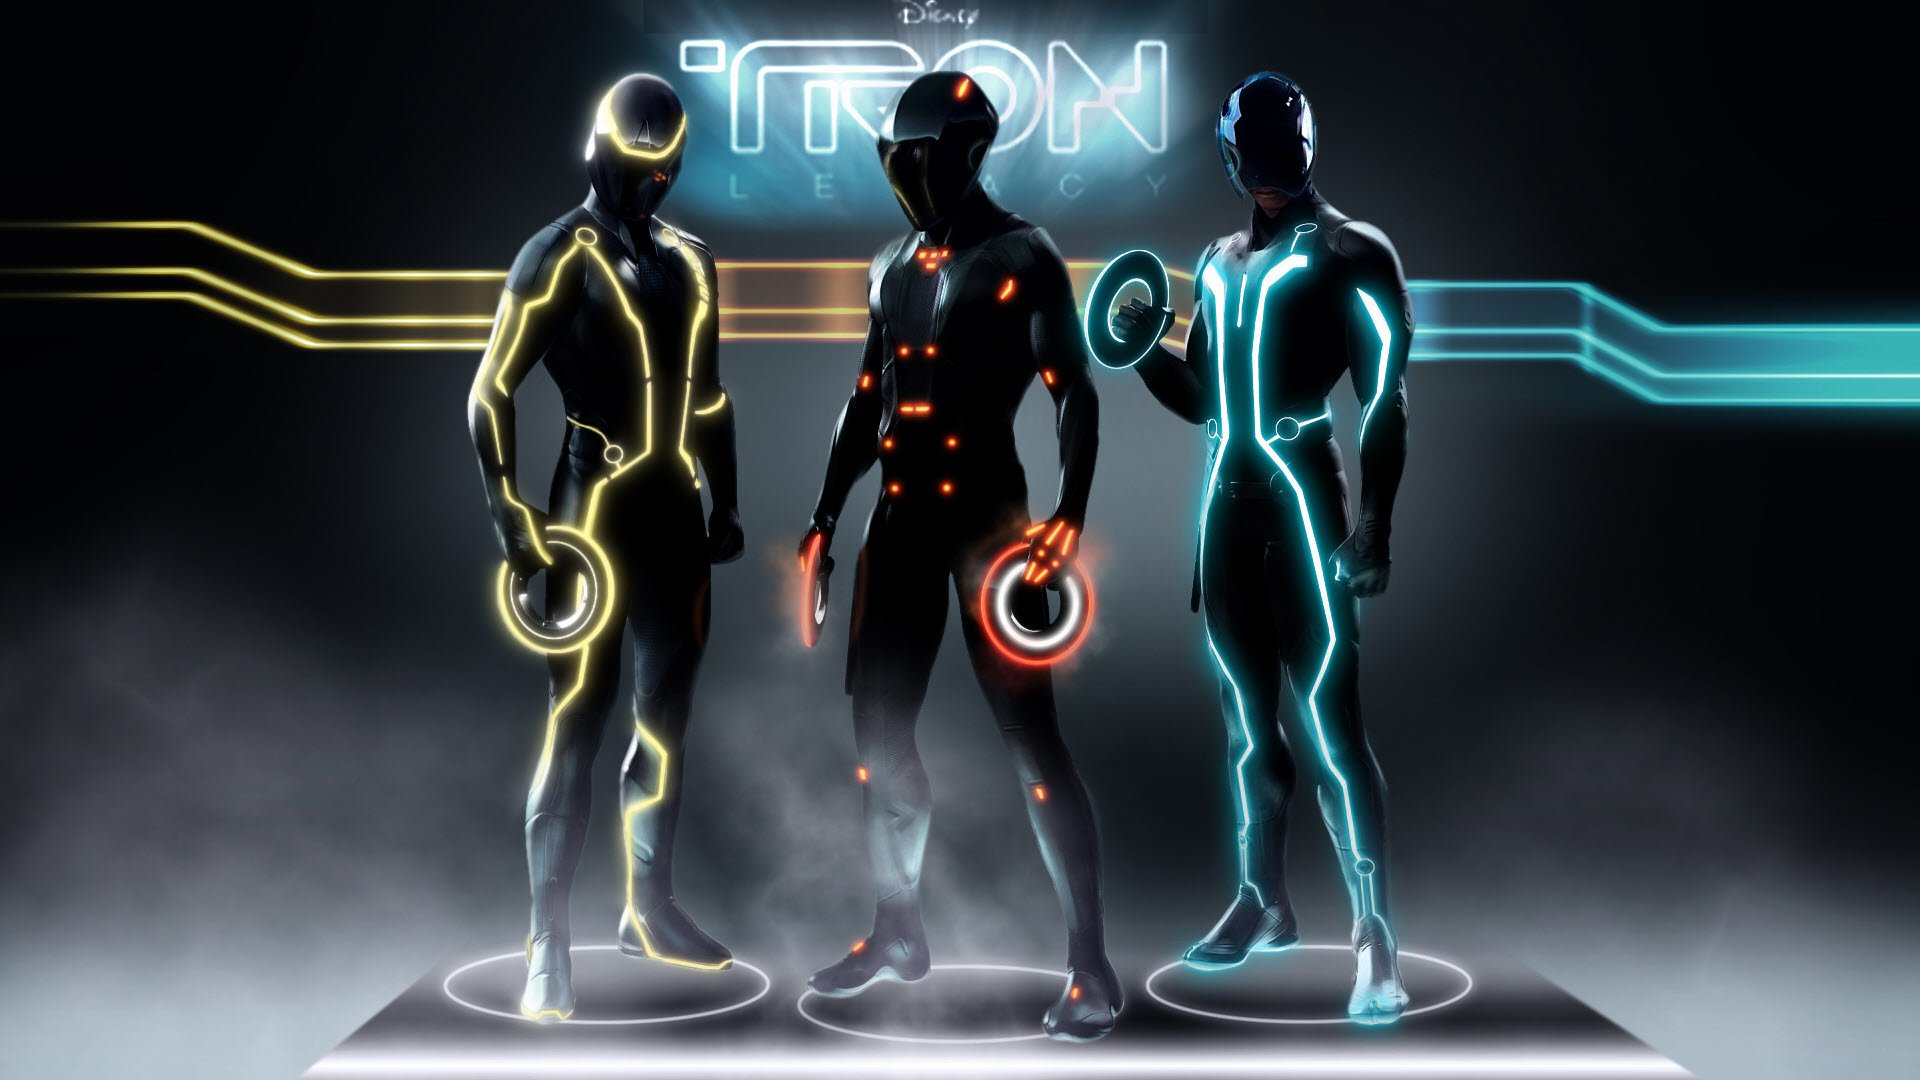 239 TRON Legacy HD Wallpapers